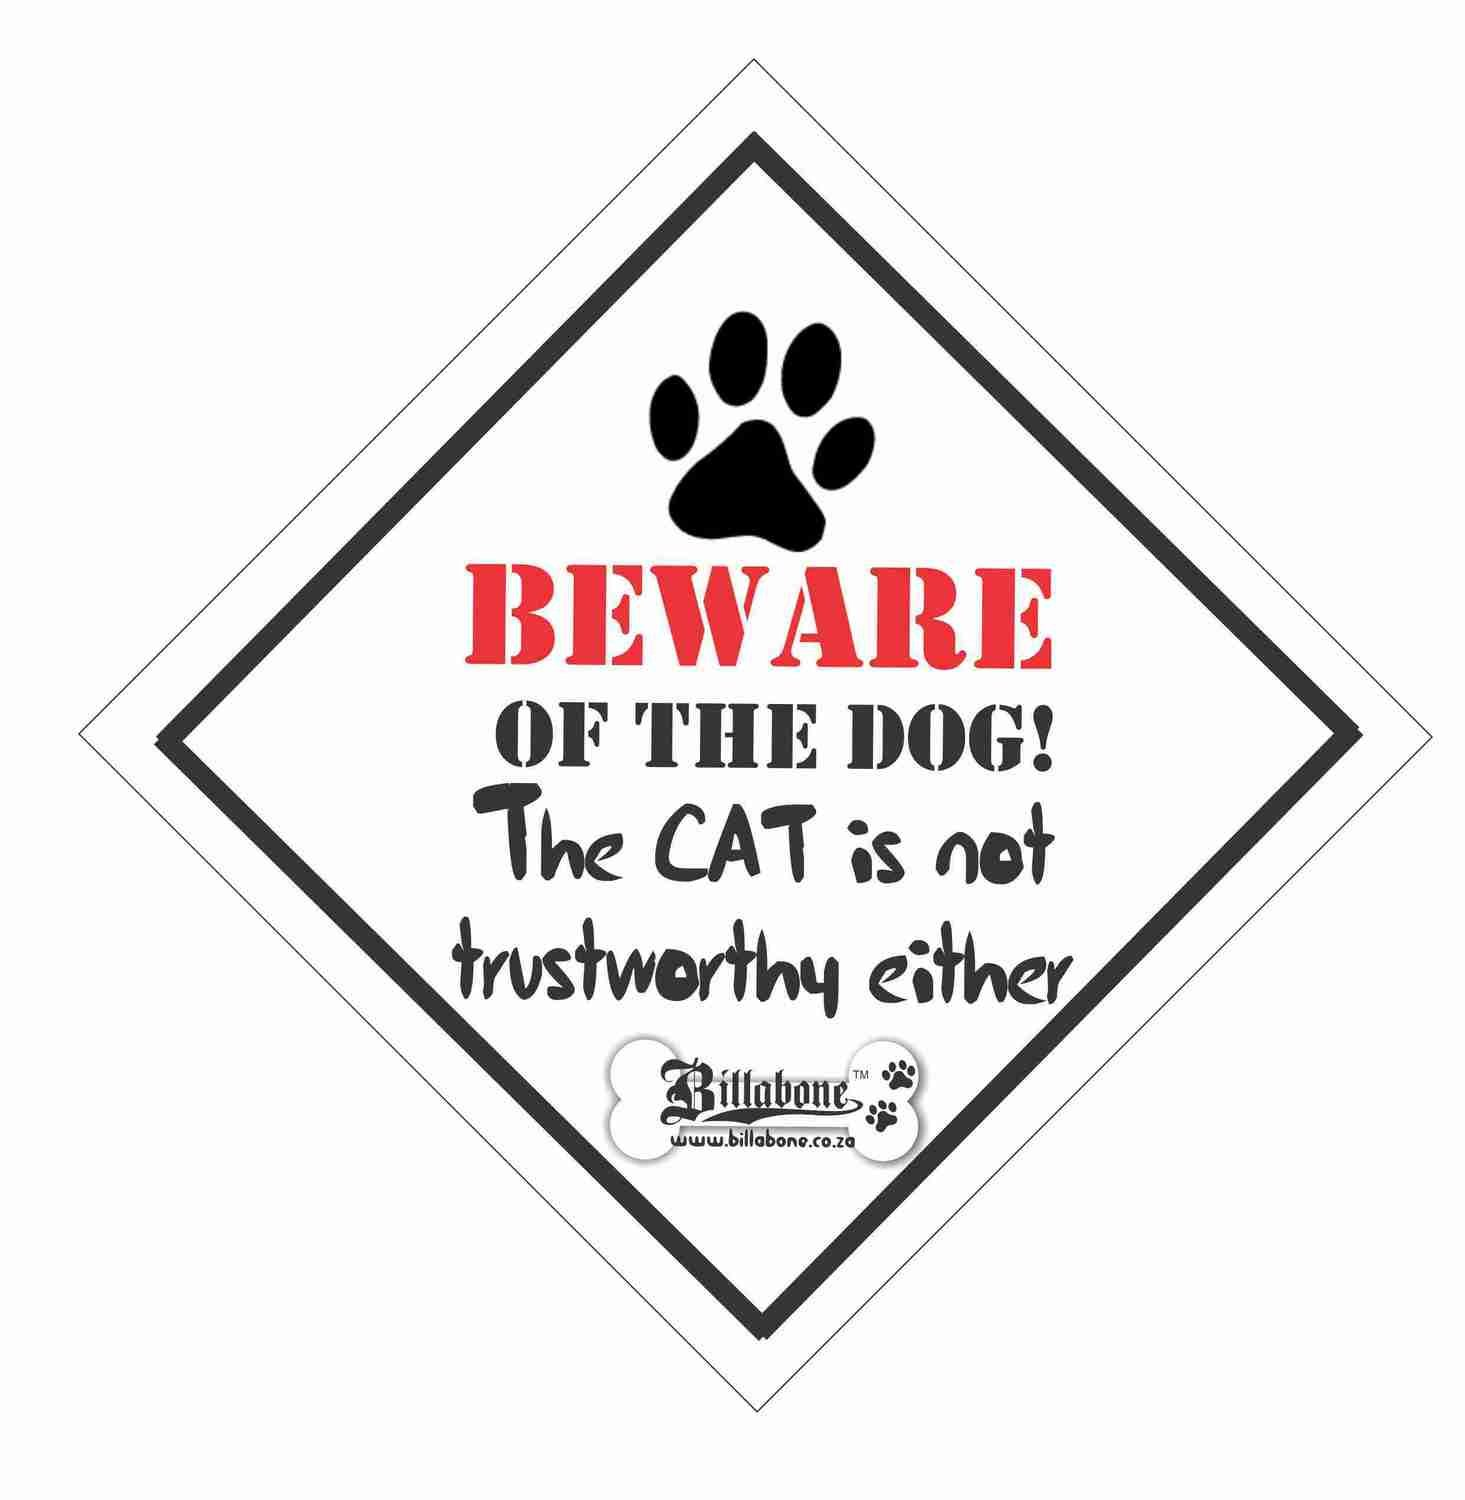 Beware of the Dog the cat is not trustworthy either - Car Sign or Sticker